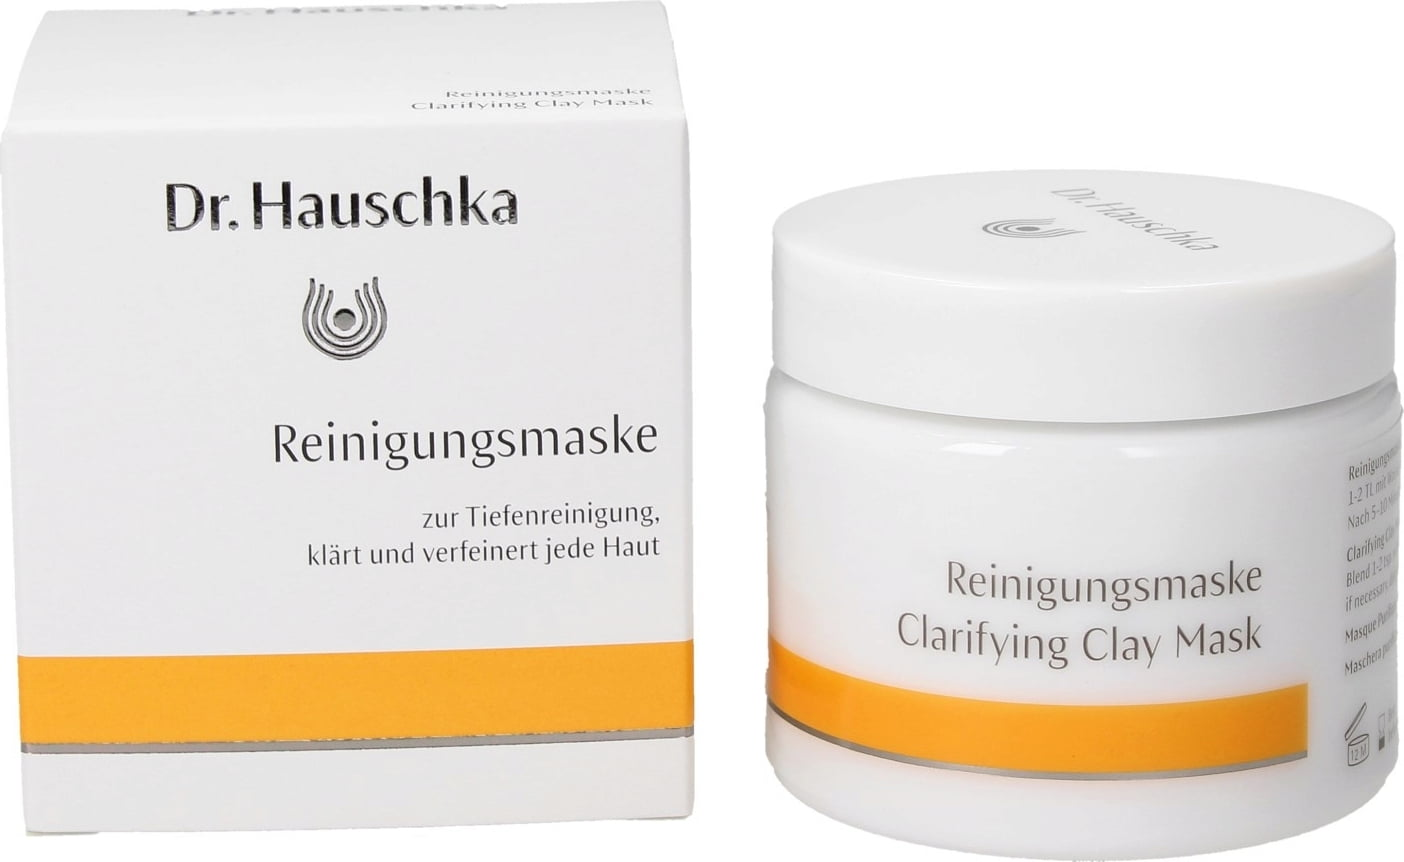 dr hauschka cleansing clay mask instructions